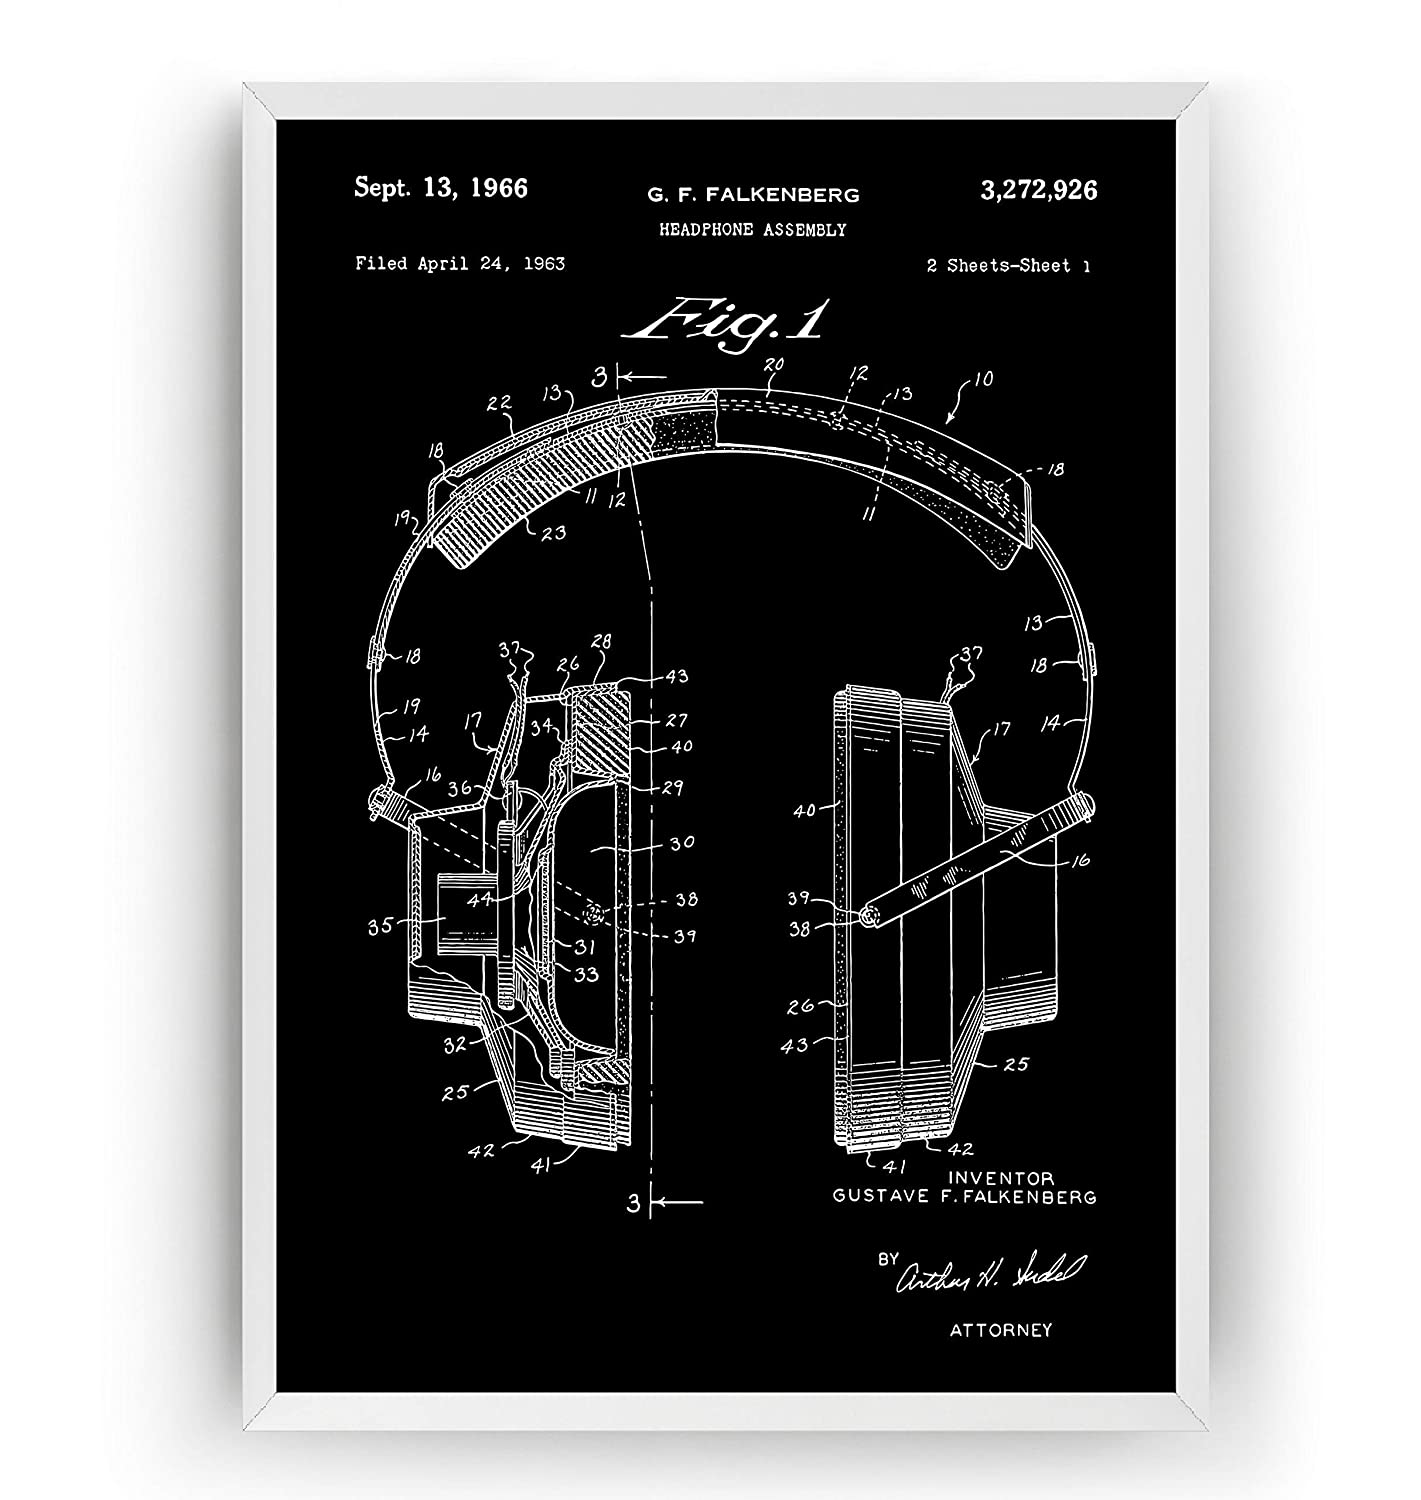 Headphones 1966 Patent Print Frame Not Included Poster Giclee Art Wall Decor Vintage Blueprint Gift